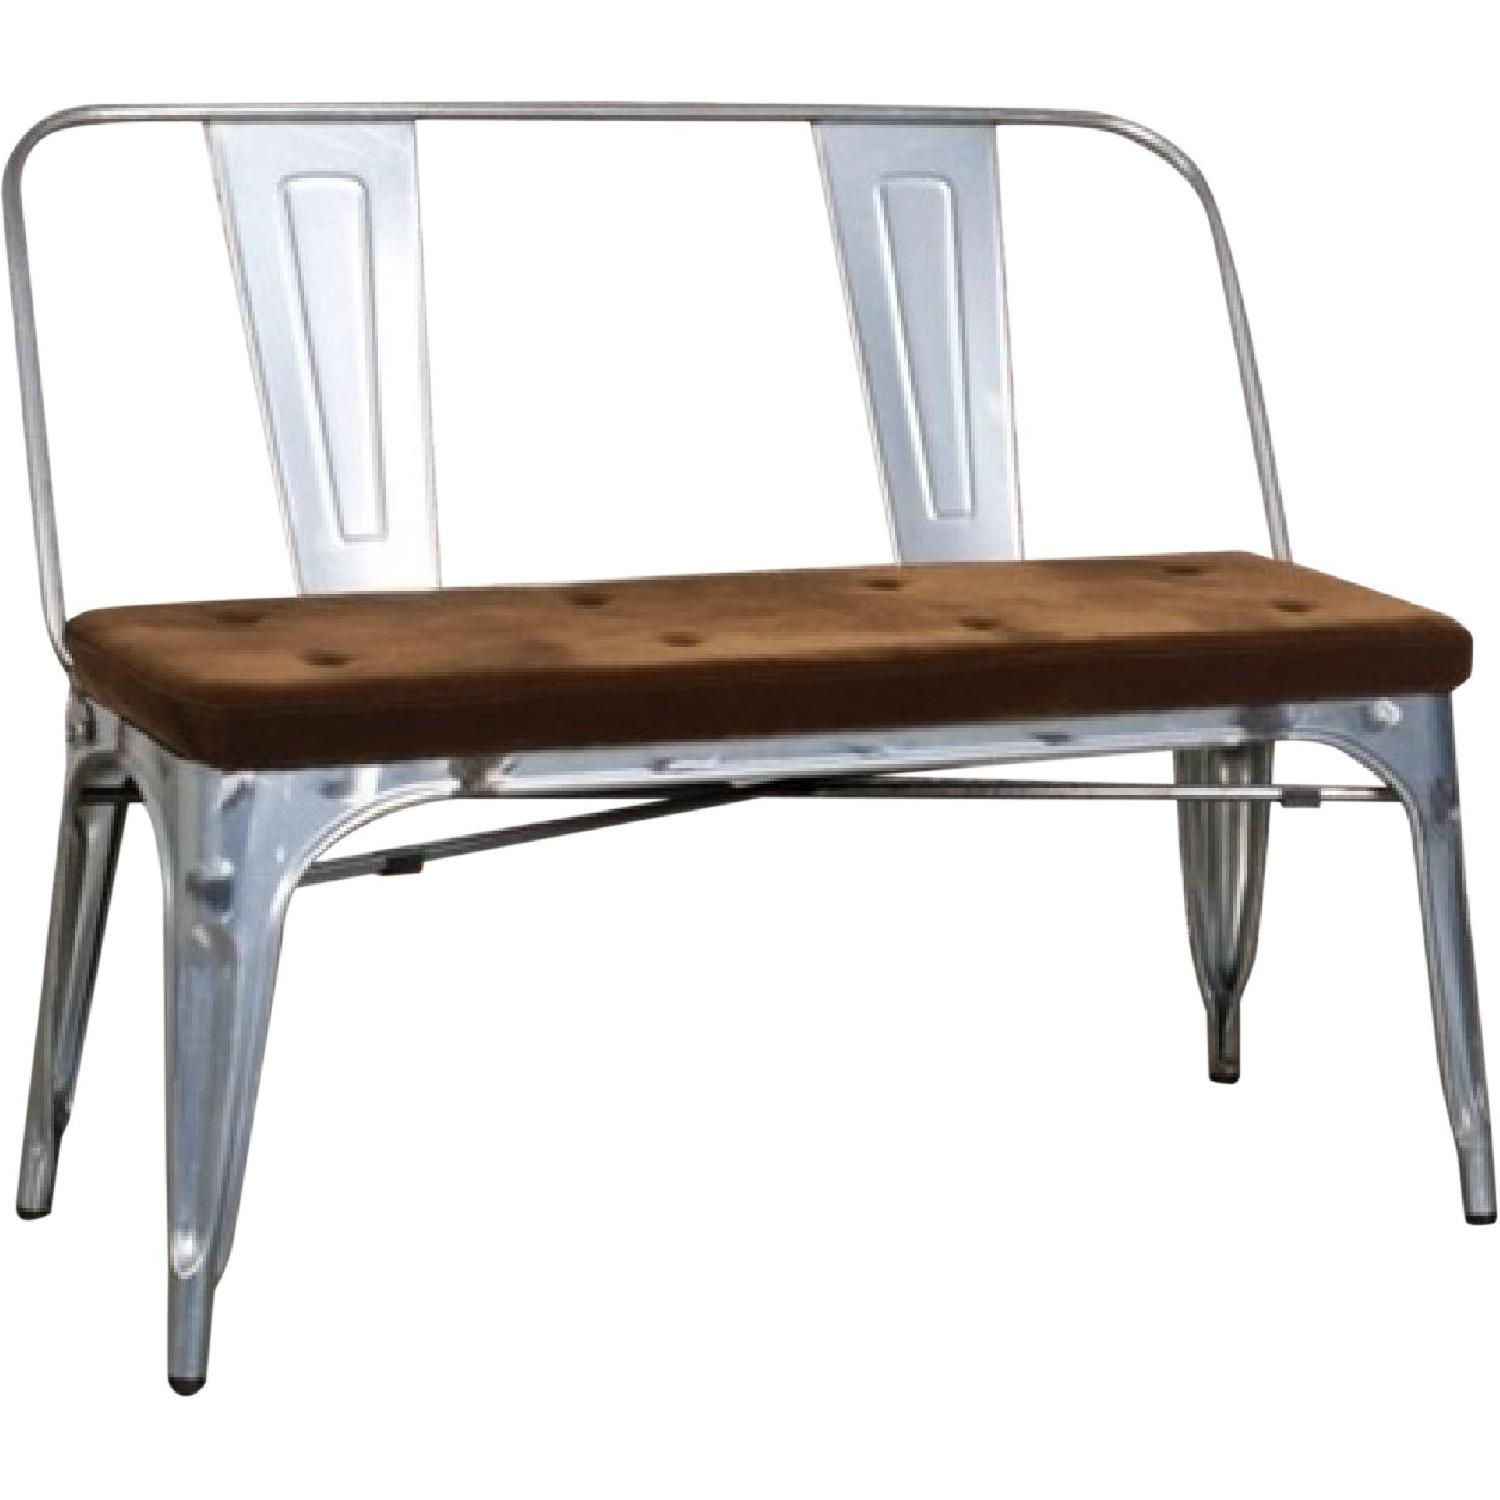 Double Seat Bench In Galvanized Metal Frame w/ Brown Fabric Cushion - image-0